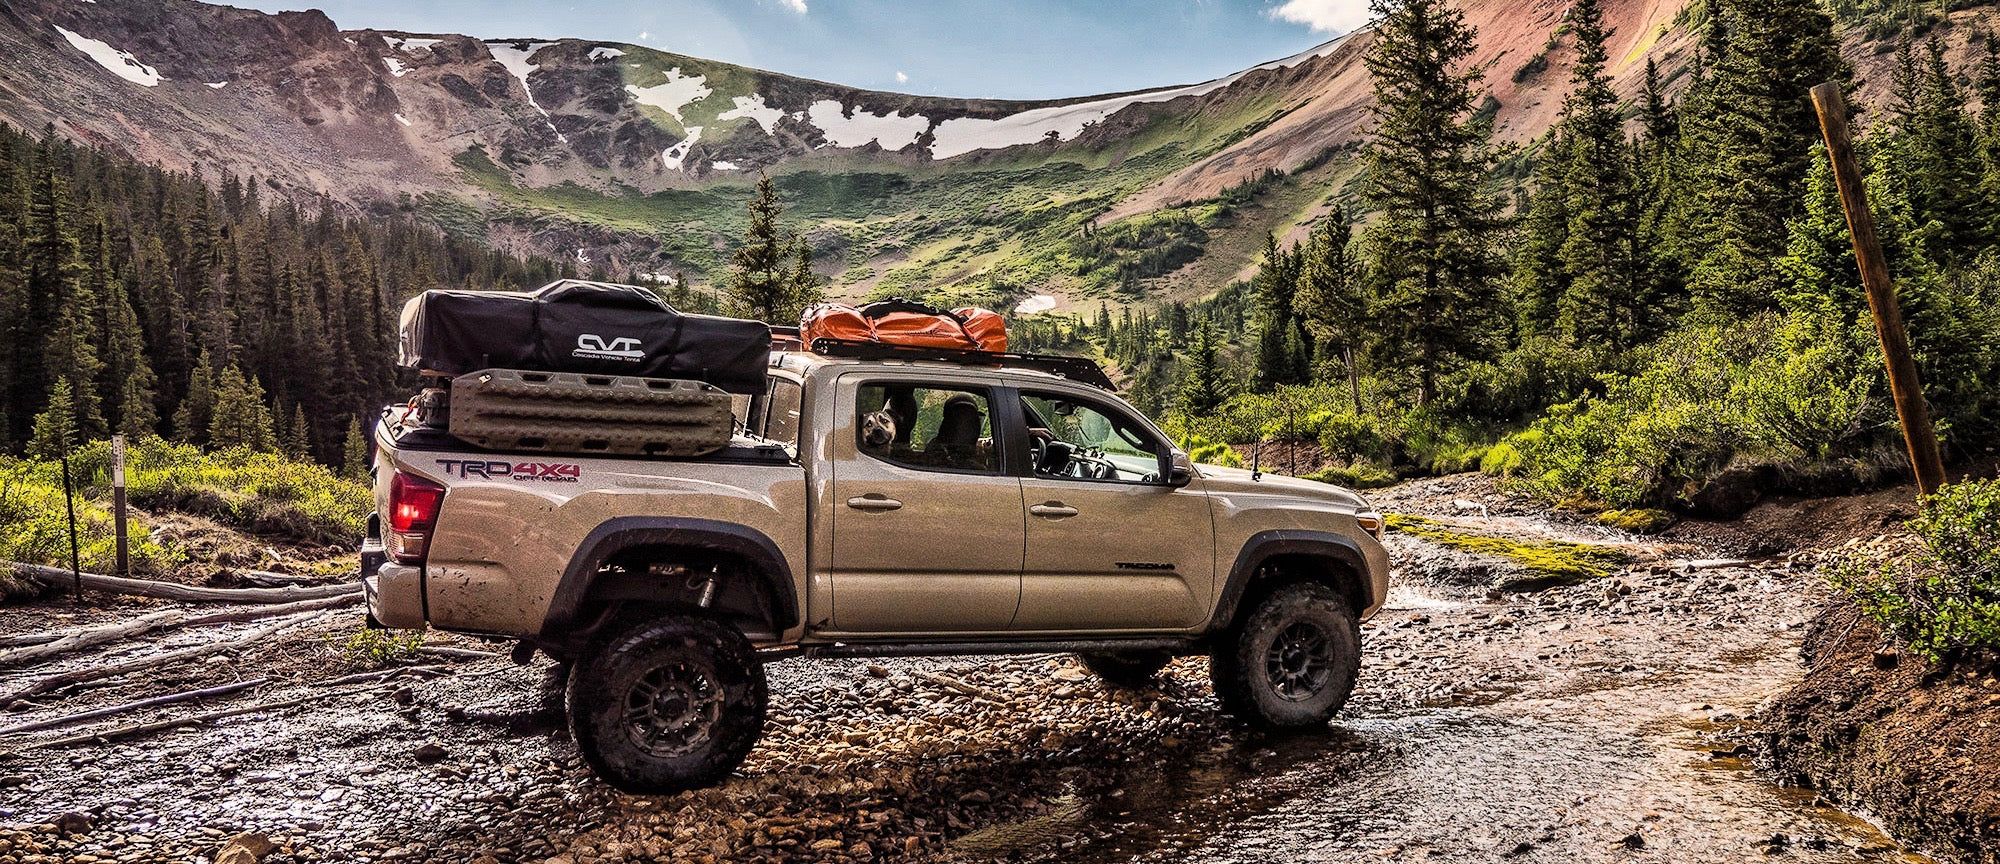 Toyota Tacoma Bed Cover Heavy Duty Hard Tonneau Covers Diamondback Covers